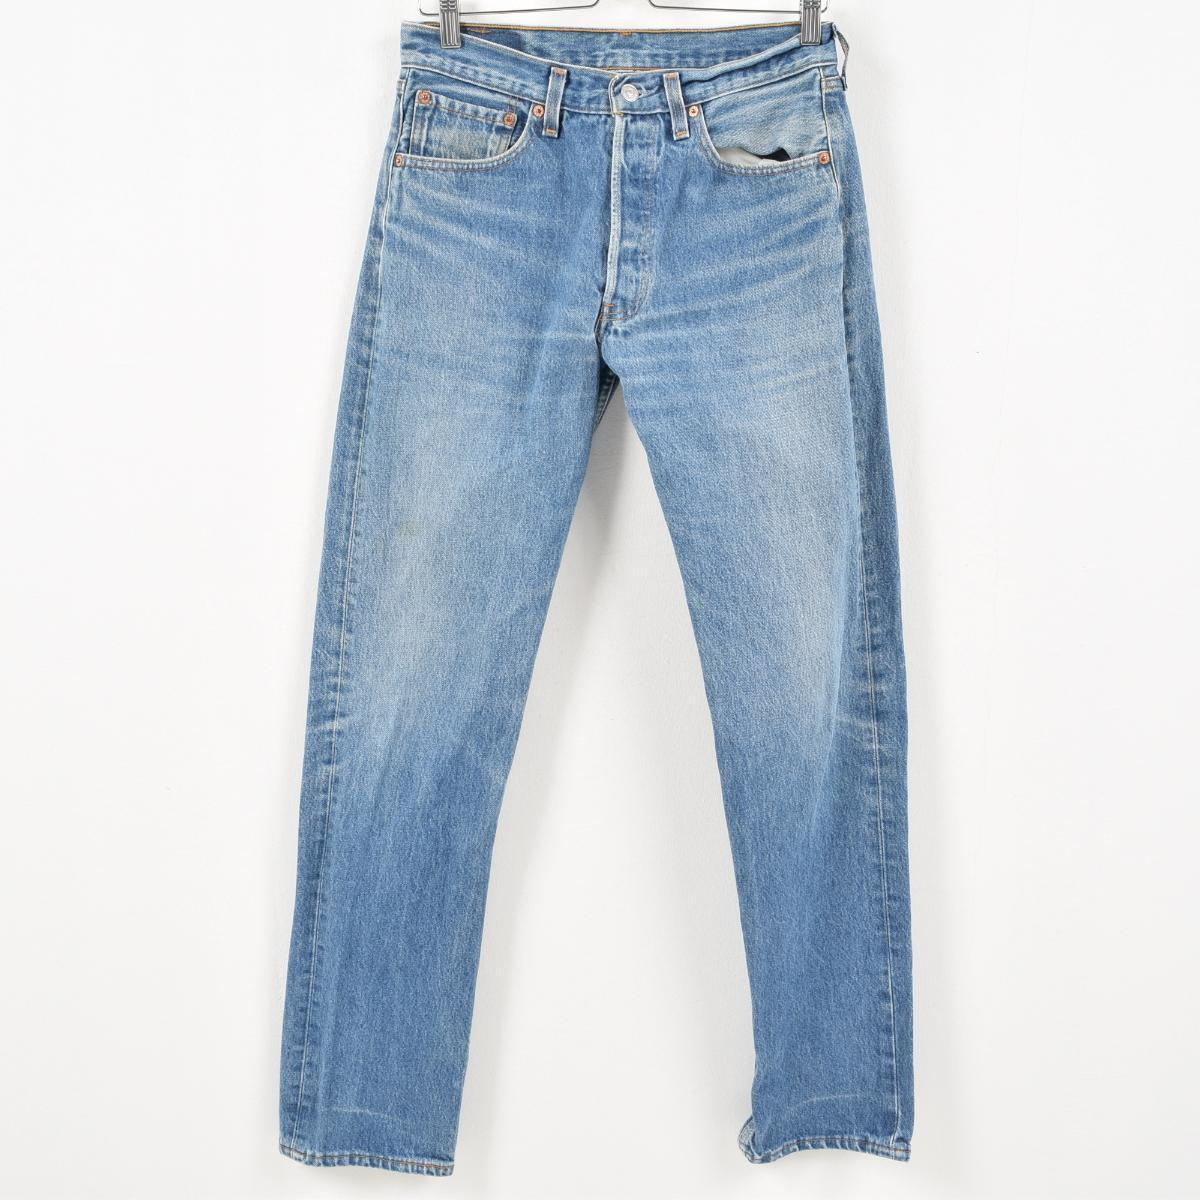 3fadc574fa8 Men w31 /wal6215 in the 90s made in Levis Levi's 501 jeans straight denim  underwear ...